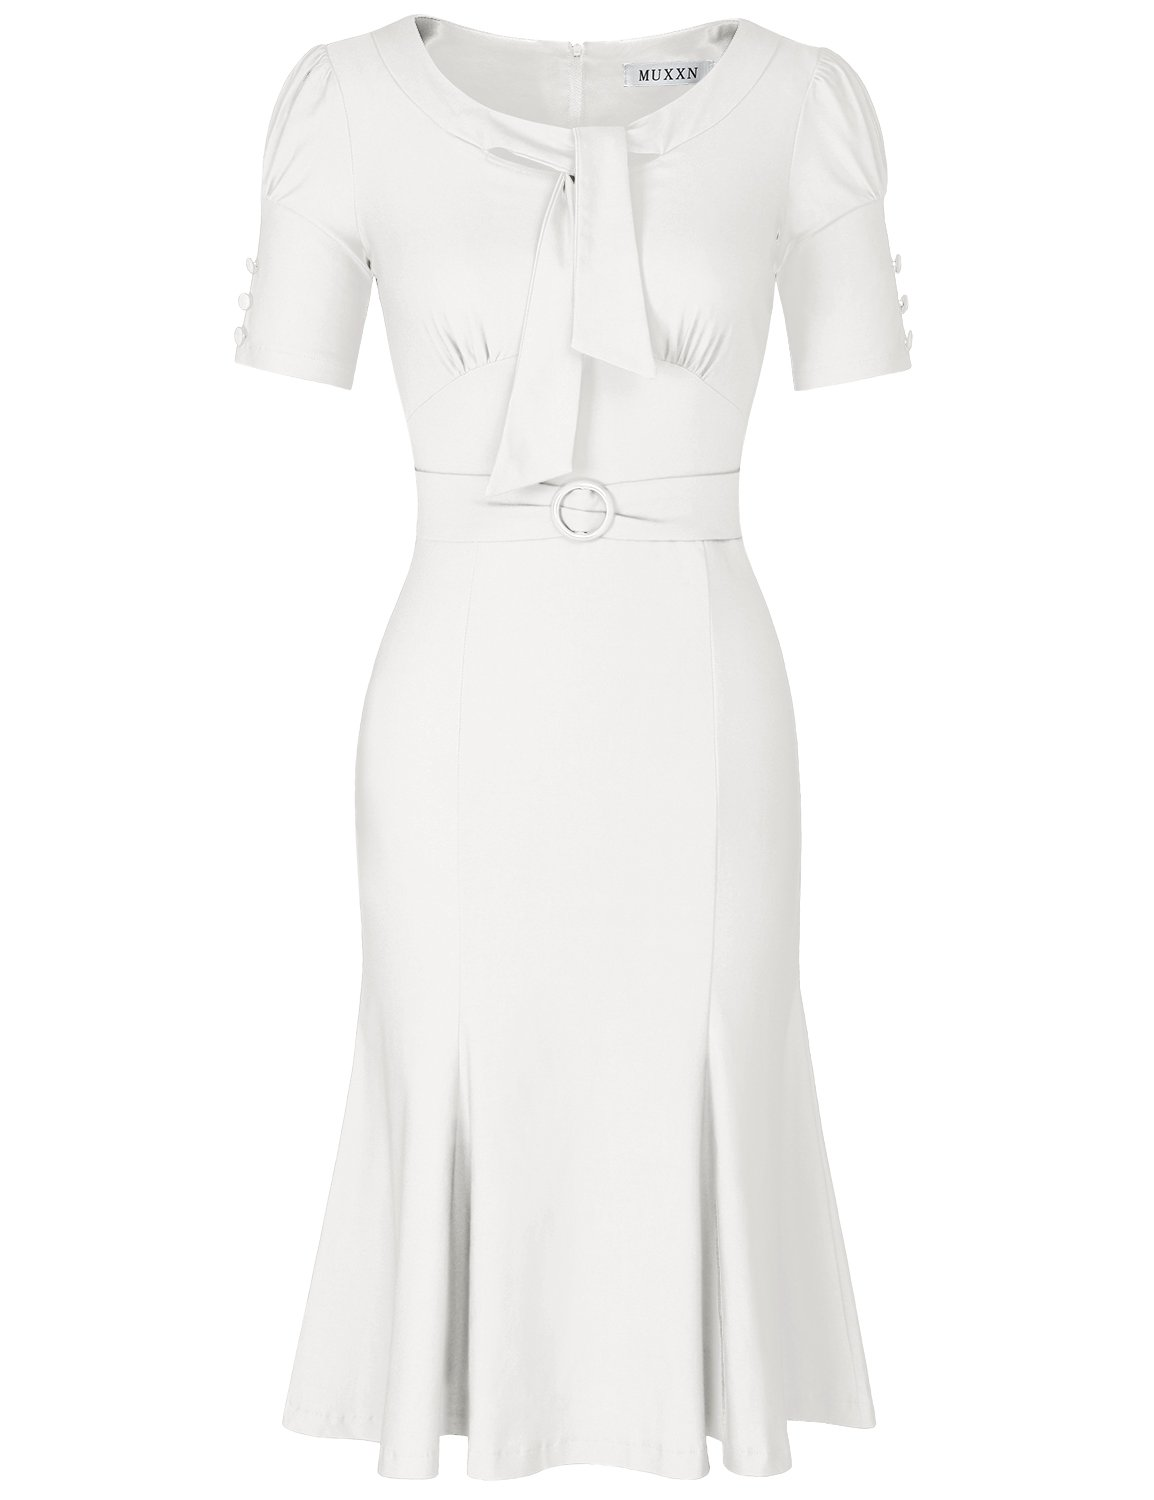 MUXXN Womens 50s 60s Style Short Sleeve Package Hip Evening Party Dress (White M)